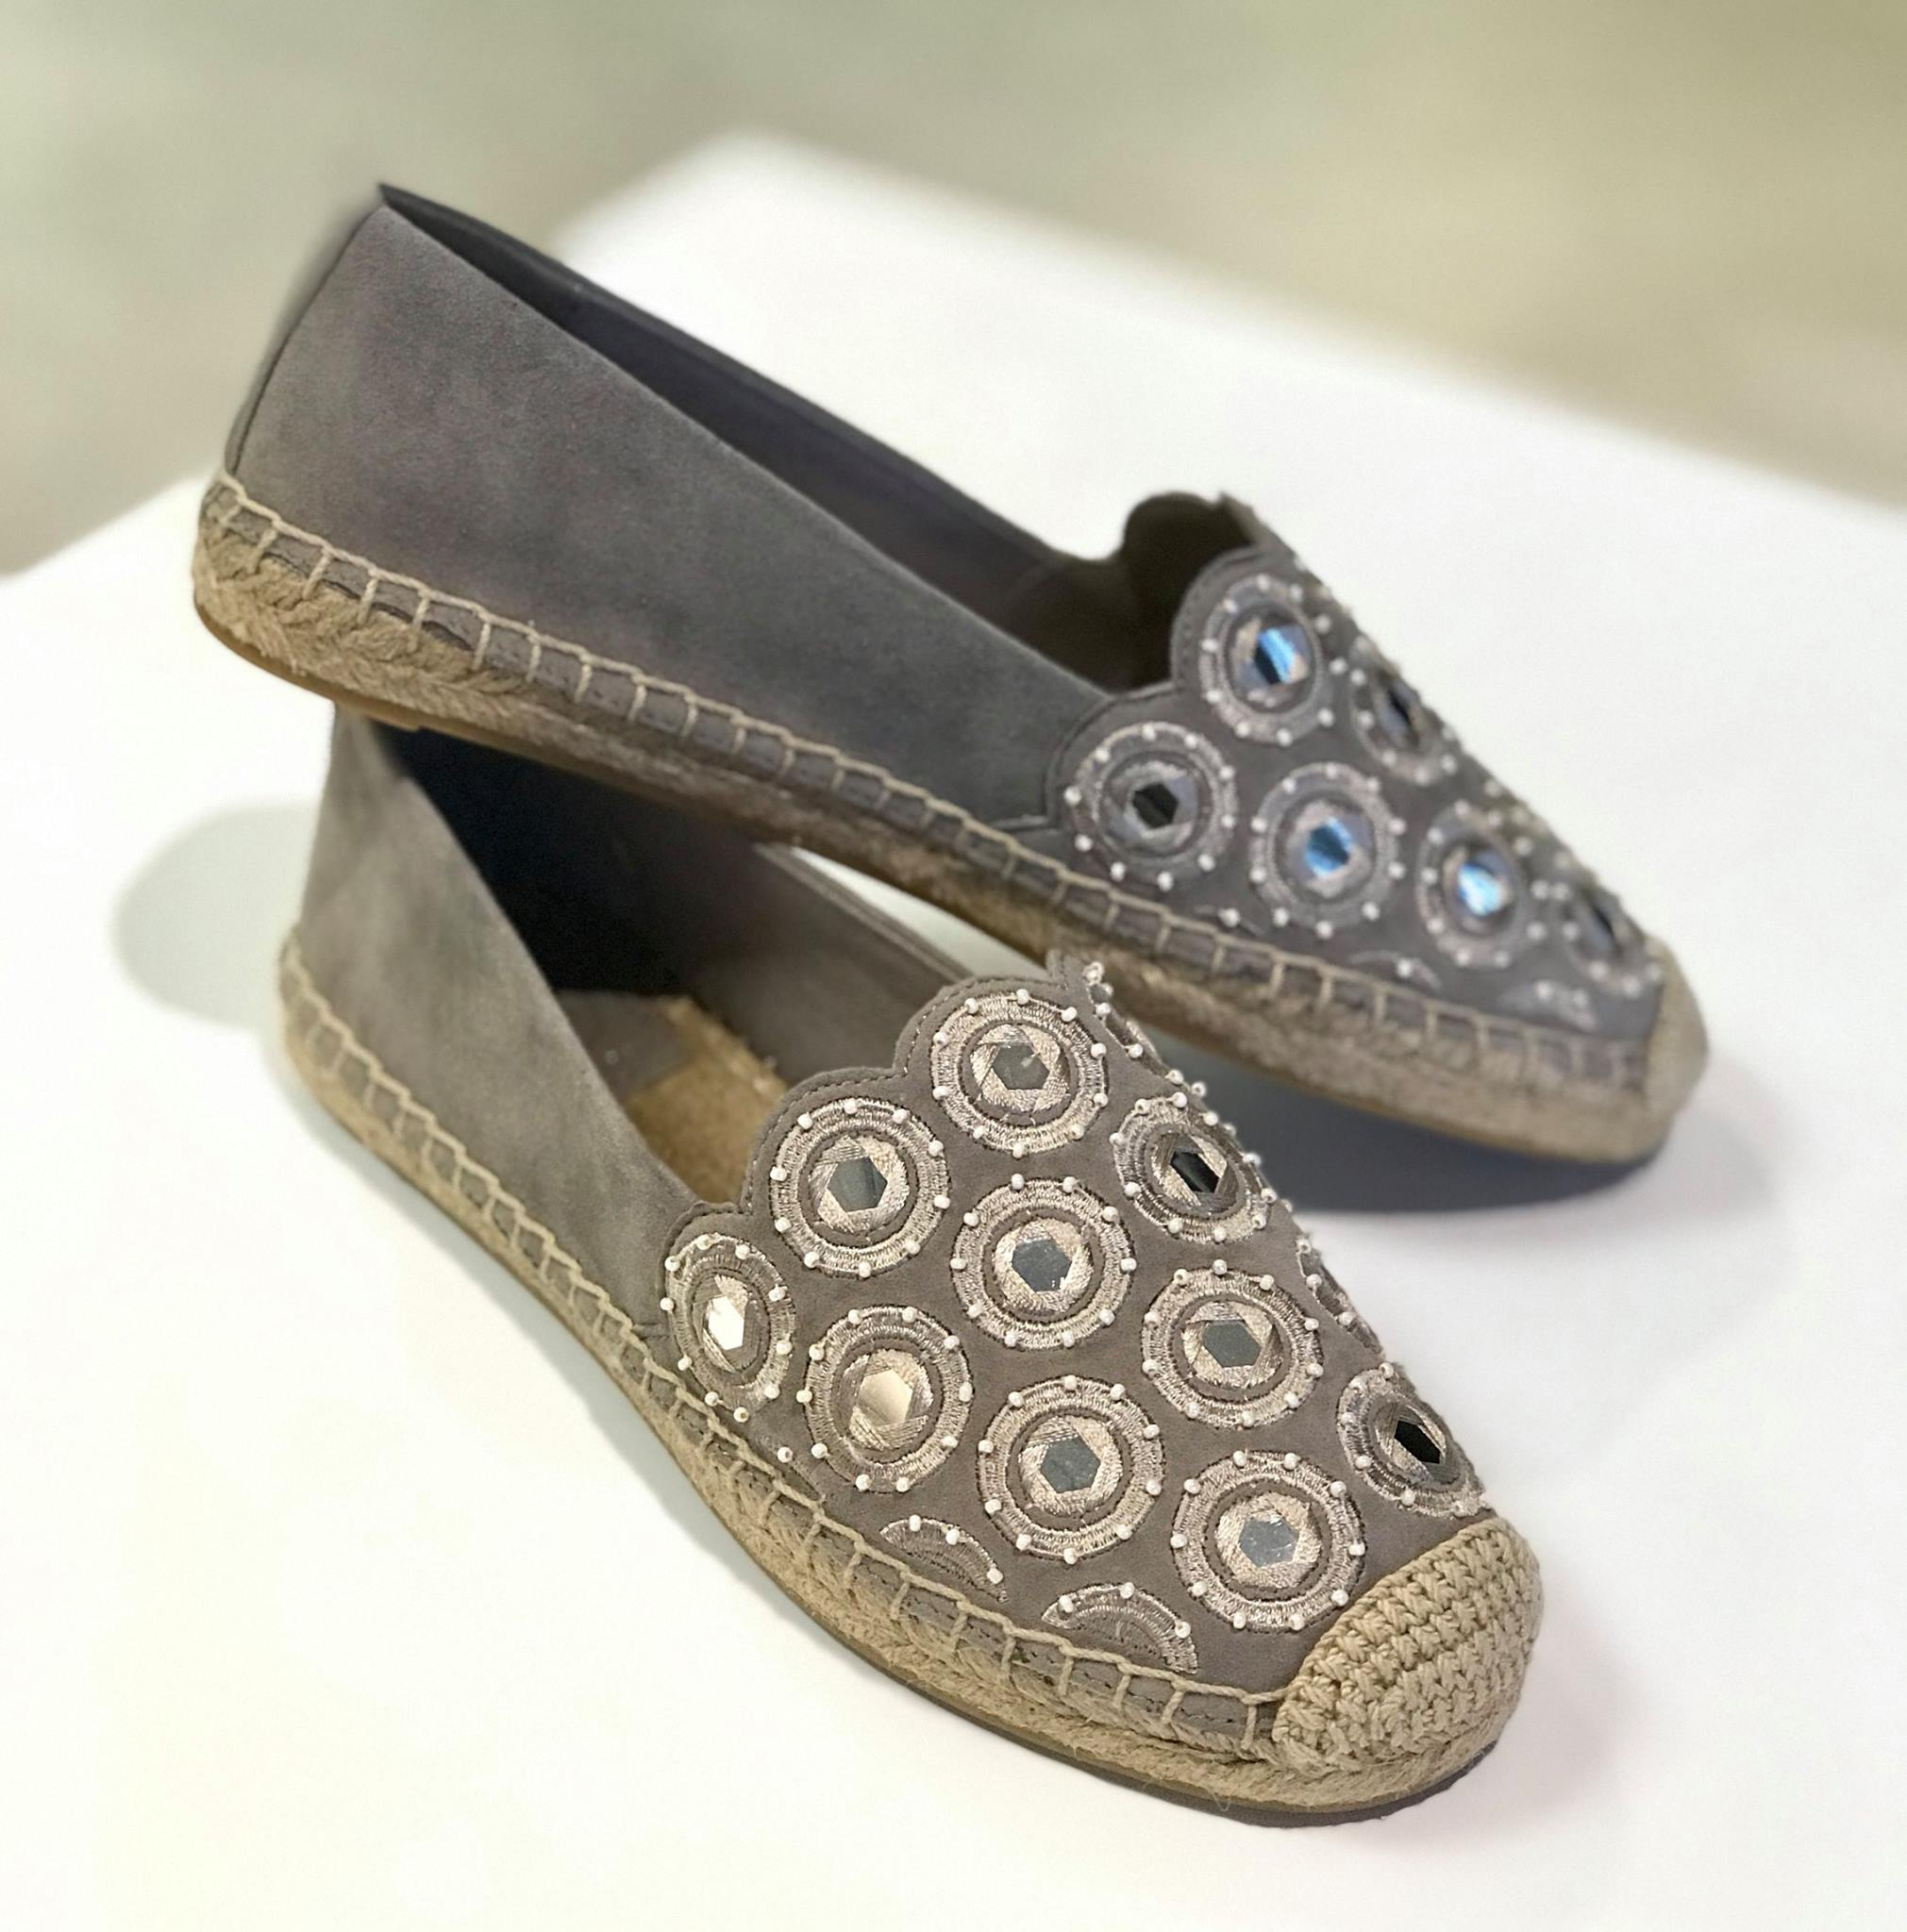 Tory Burch Mirrored Espadrilles